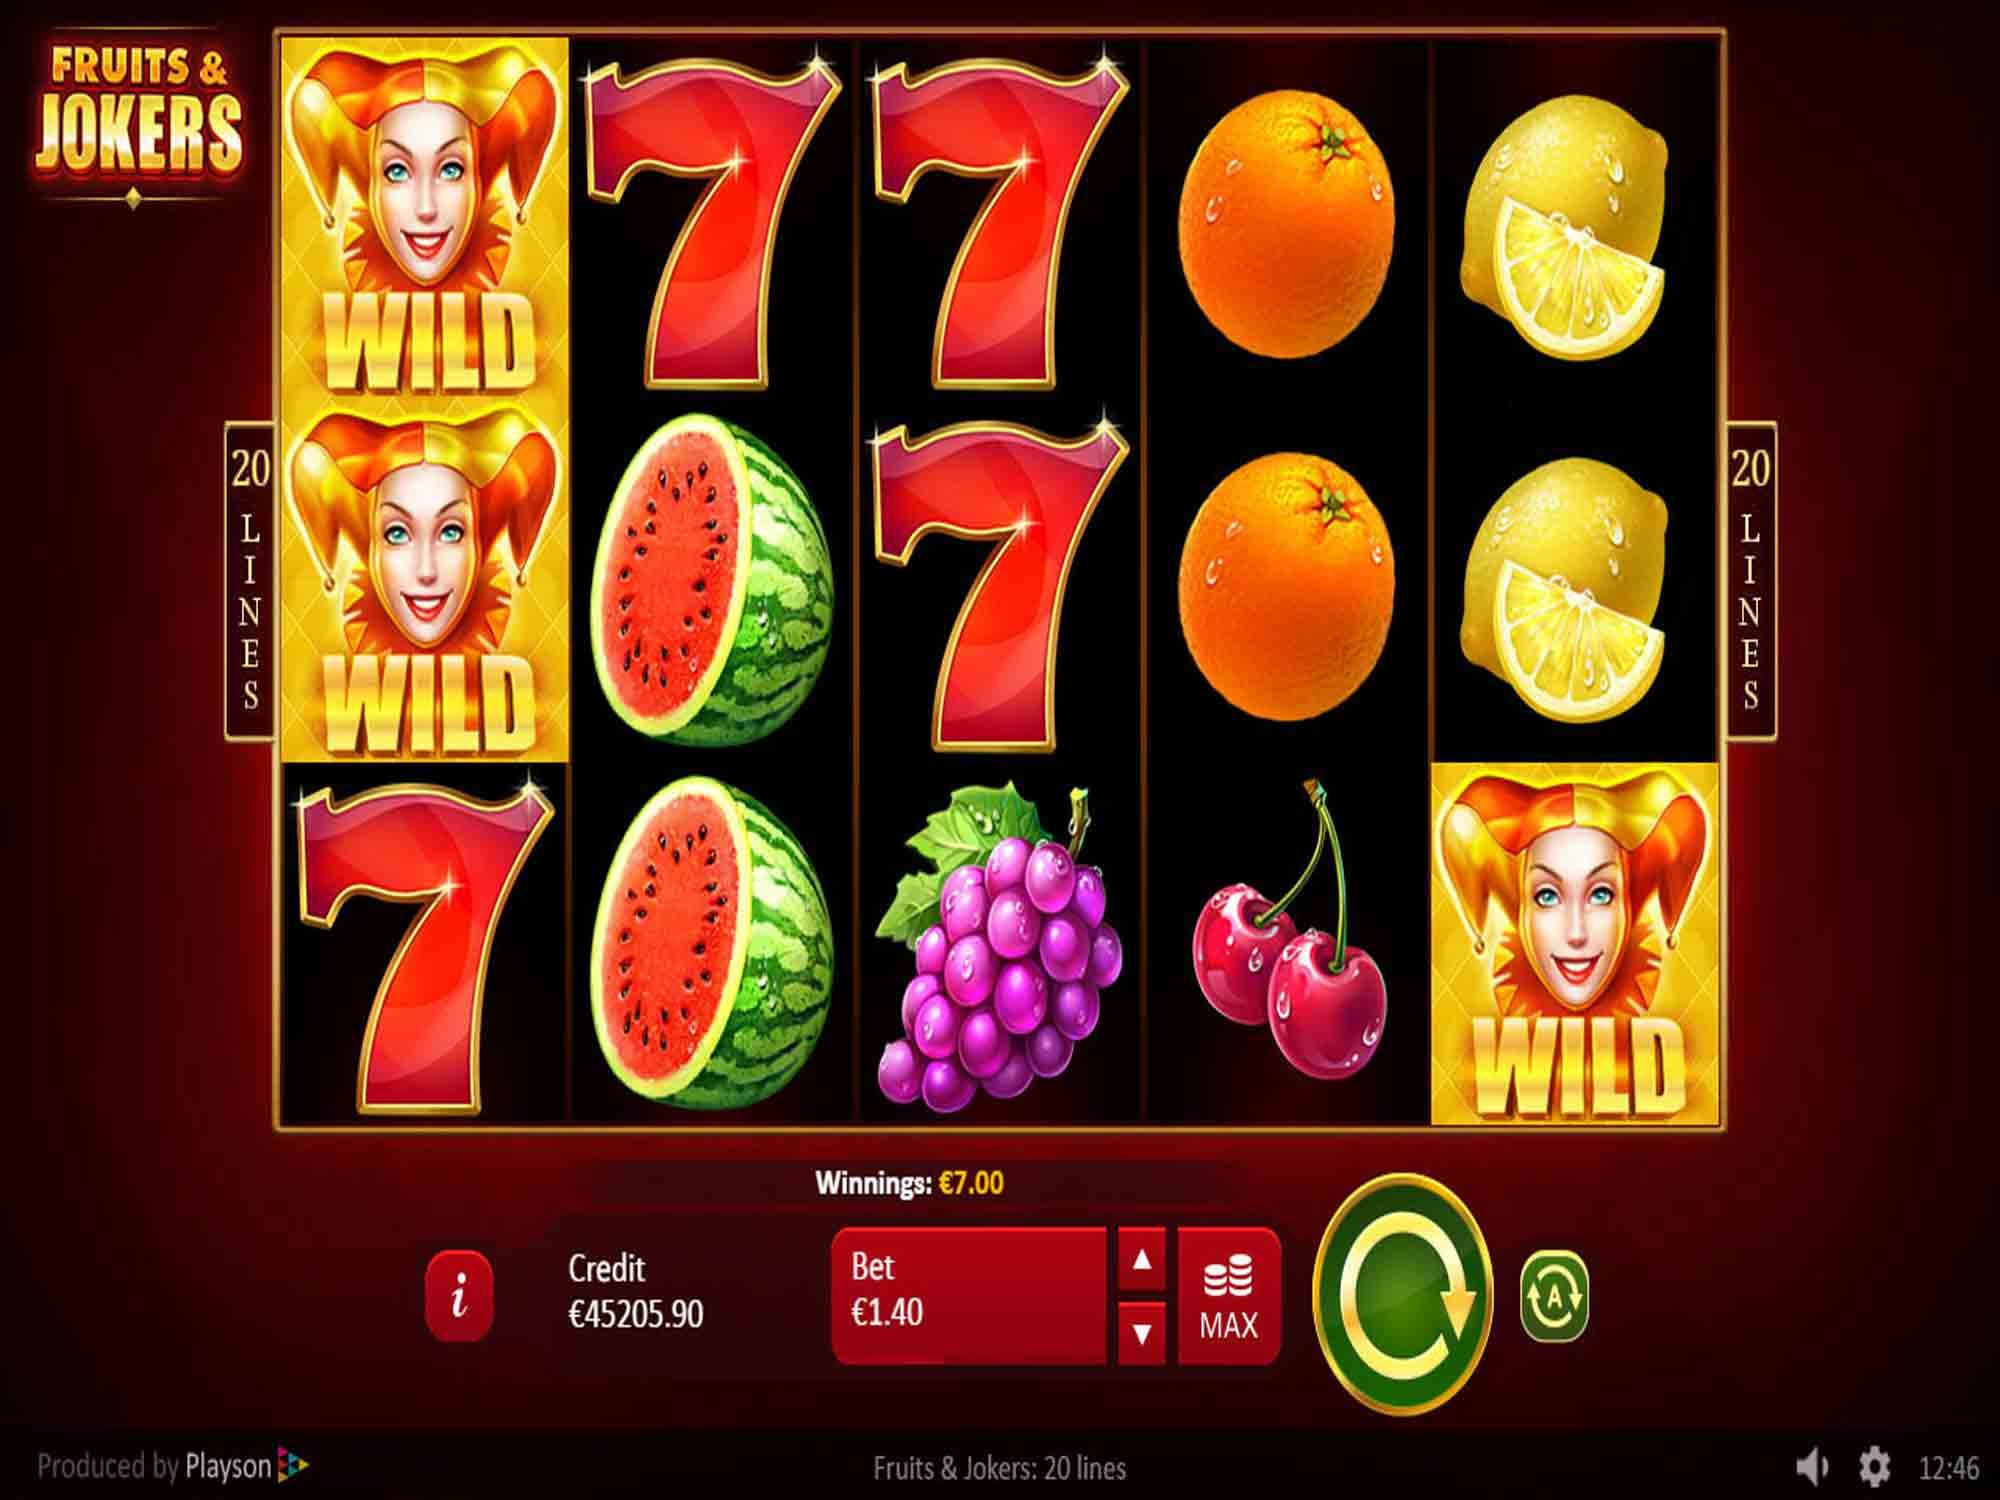 Fruits & Jokers Slot Game